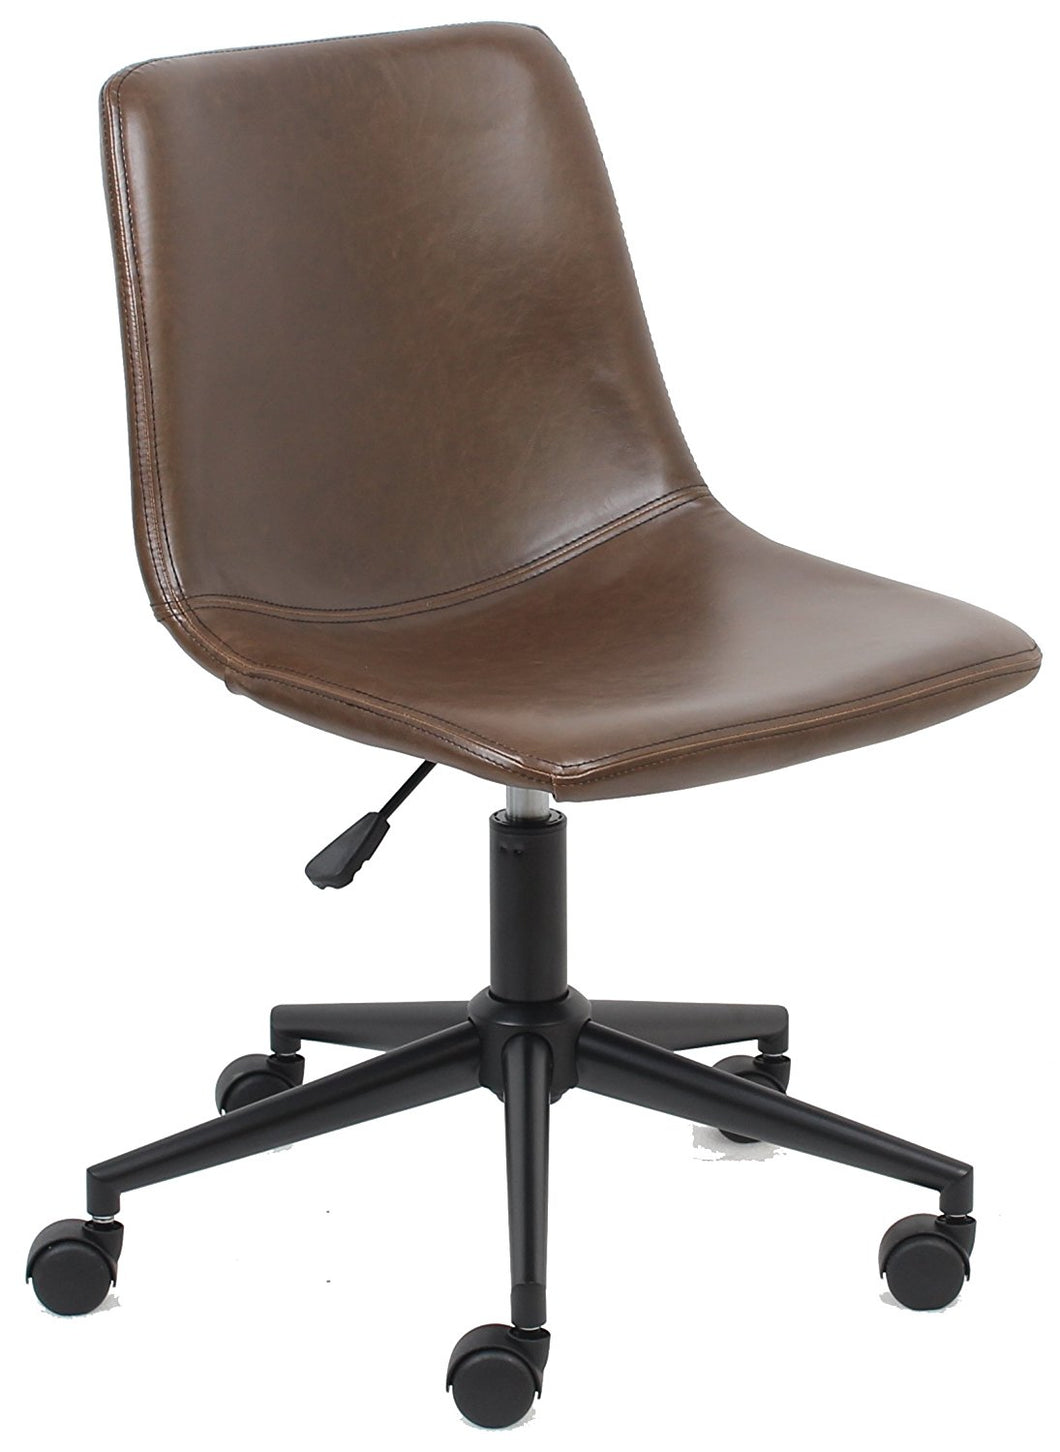 Yafa Mid Back Fuax Leather Task Chair, Brown Office Chair